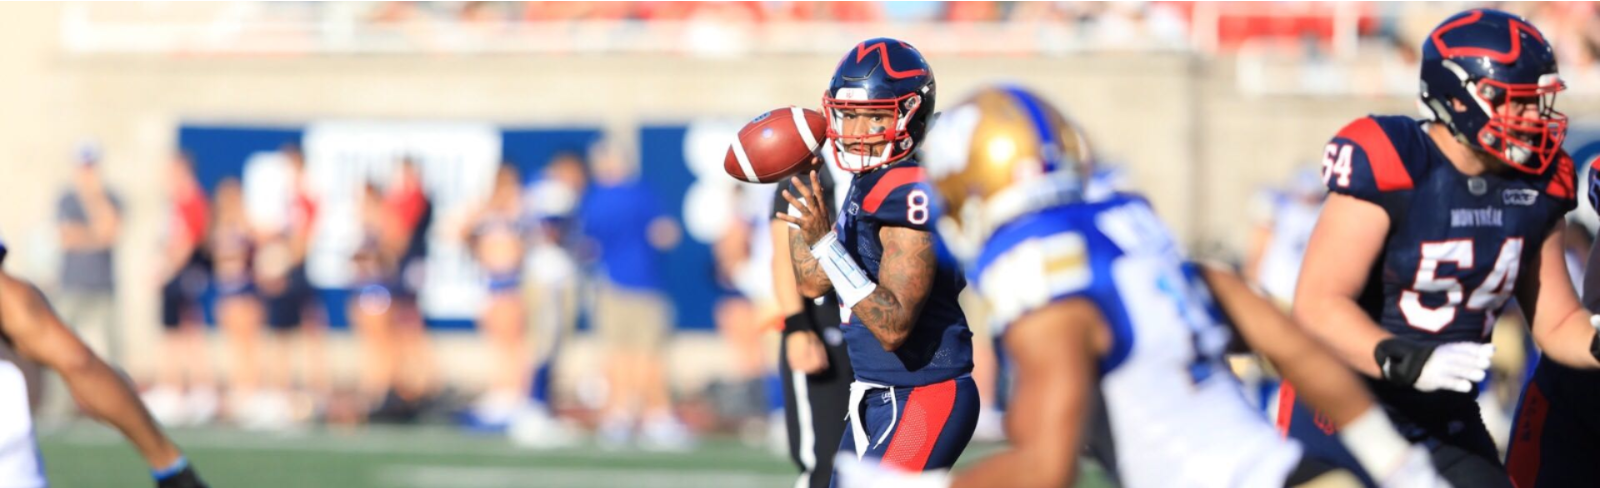 Vernon Adams Jr throws for 488 yards and propels our Als to a fashionable win against the Bombers - Montreal Alouettes